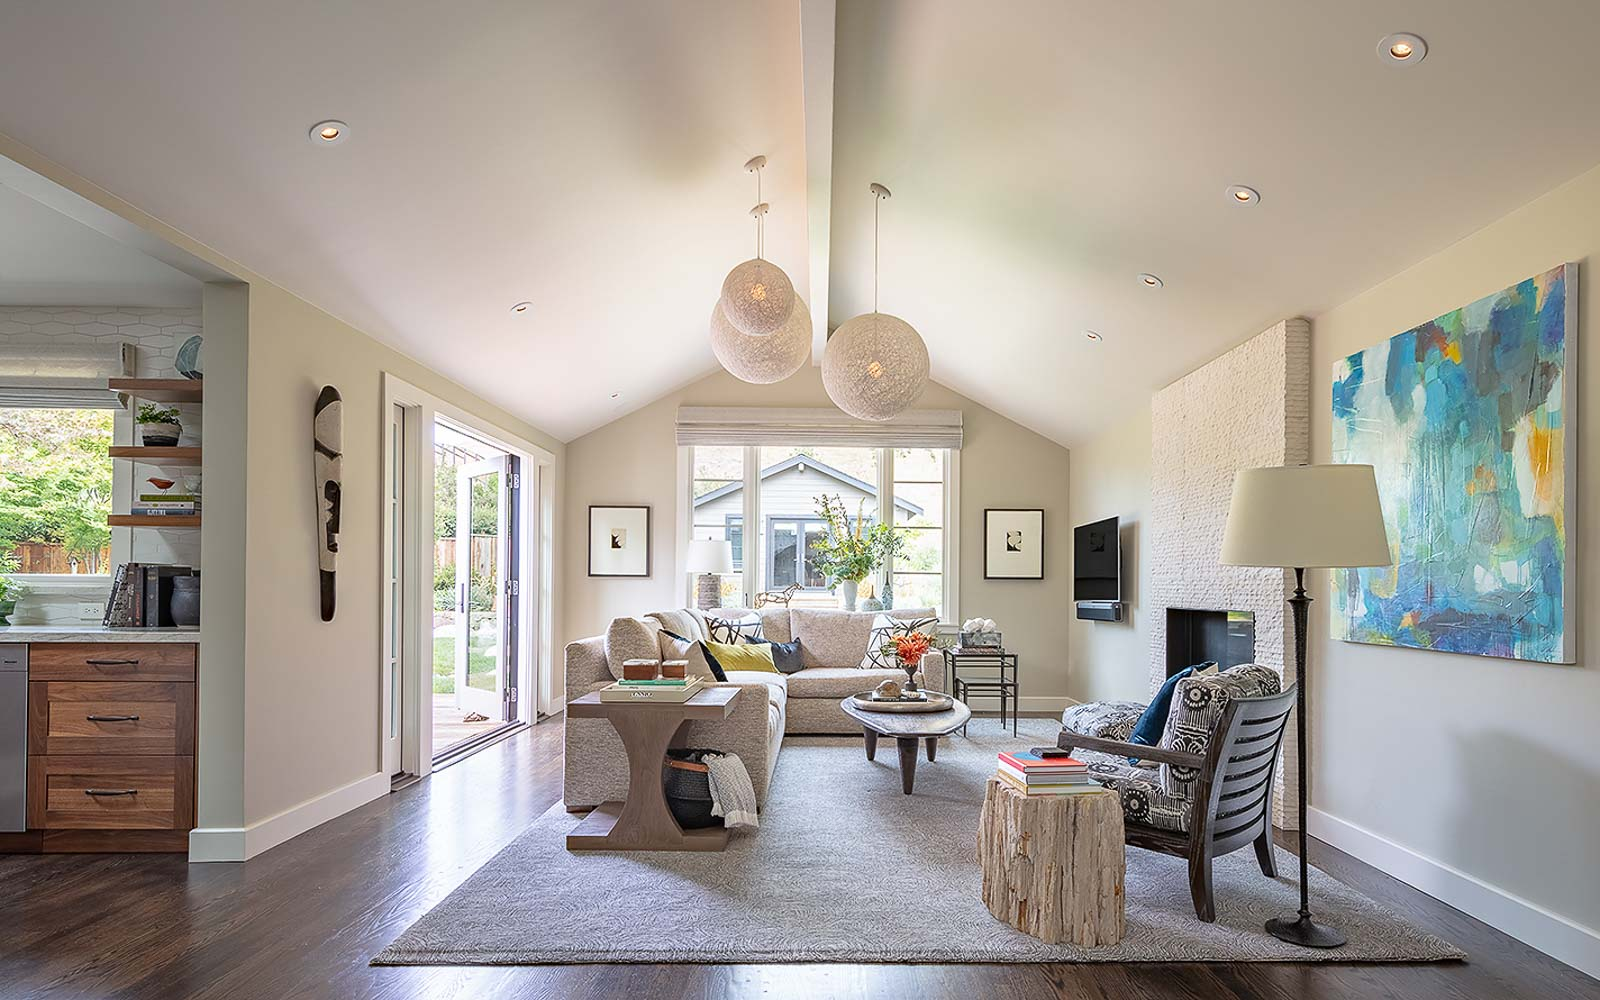 Family Room Interior Design, fireplace, by LMB Interiors